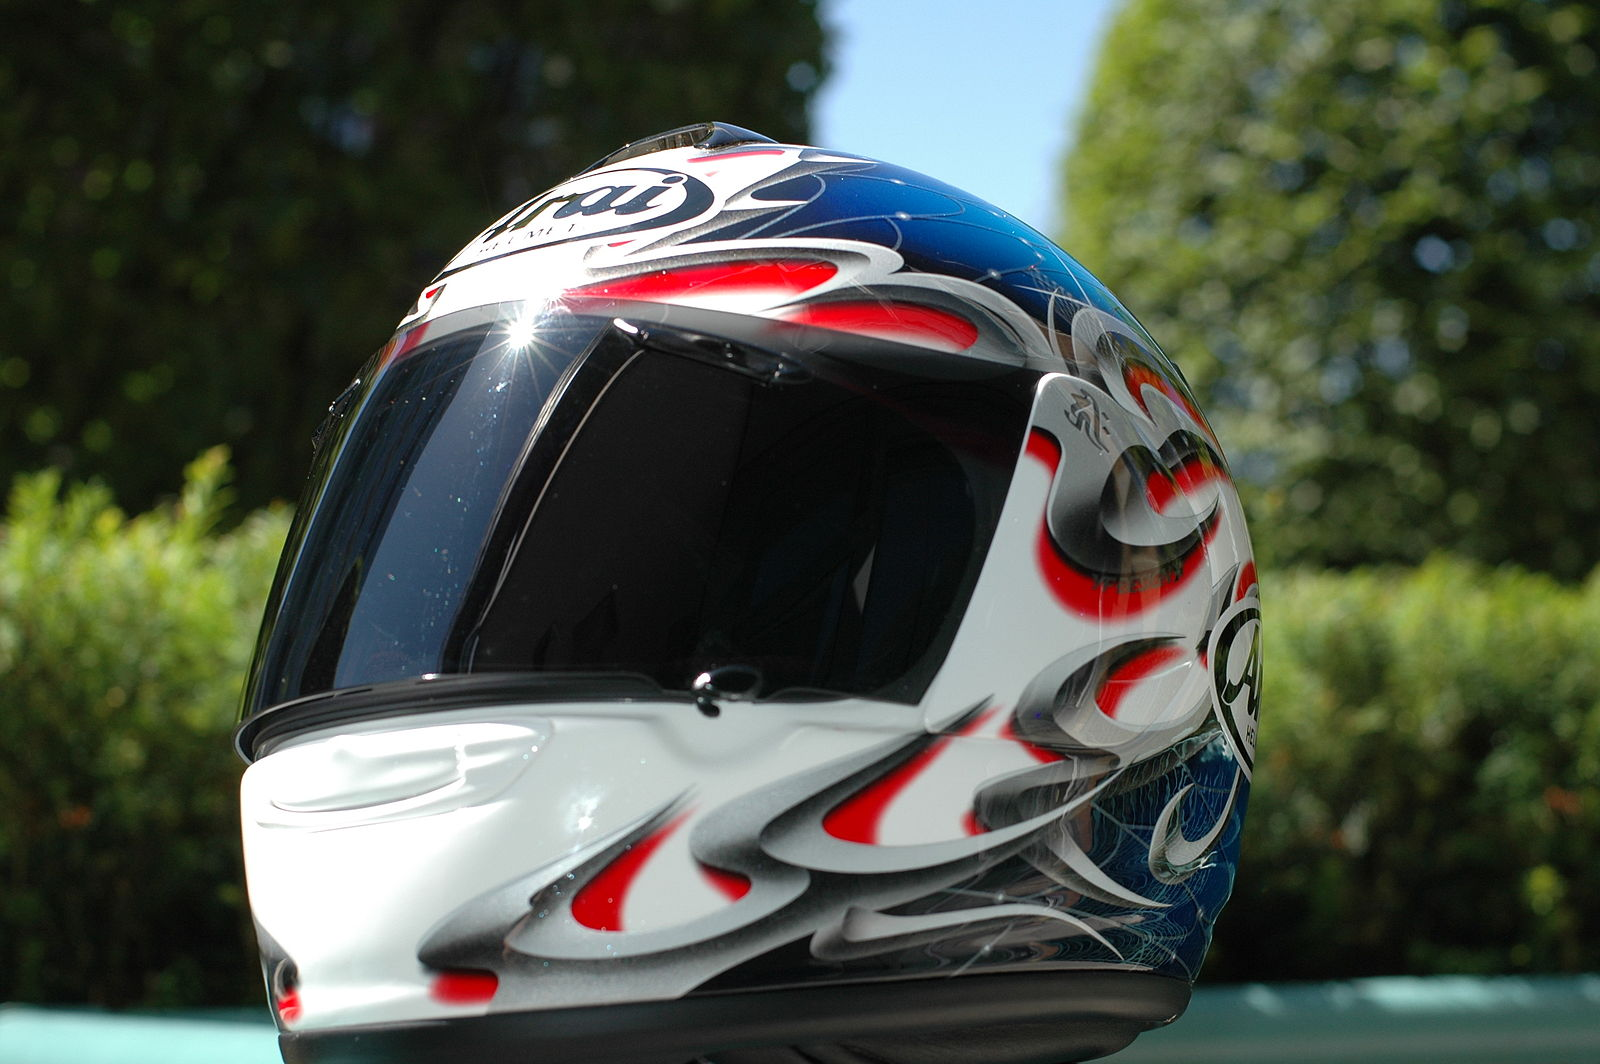 The 5 Safest Motorcycle Helmets Of 2014